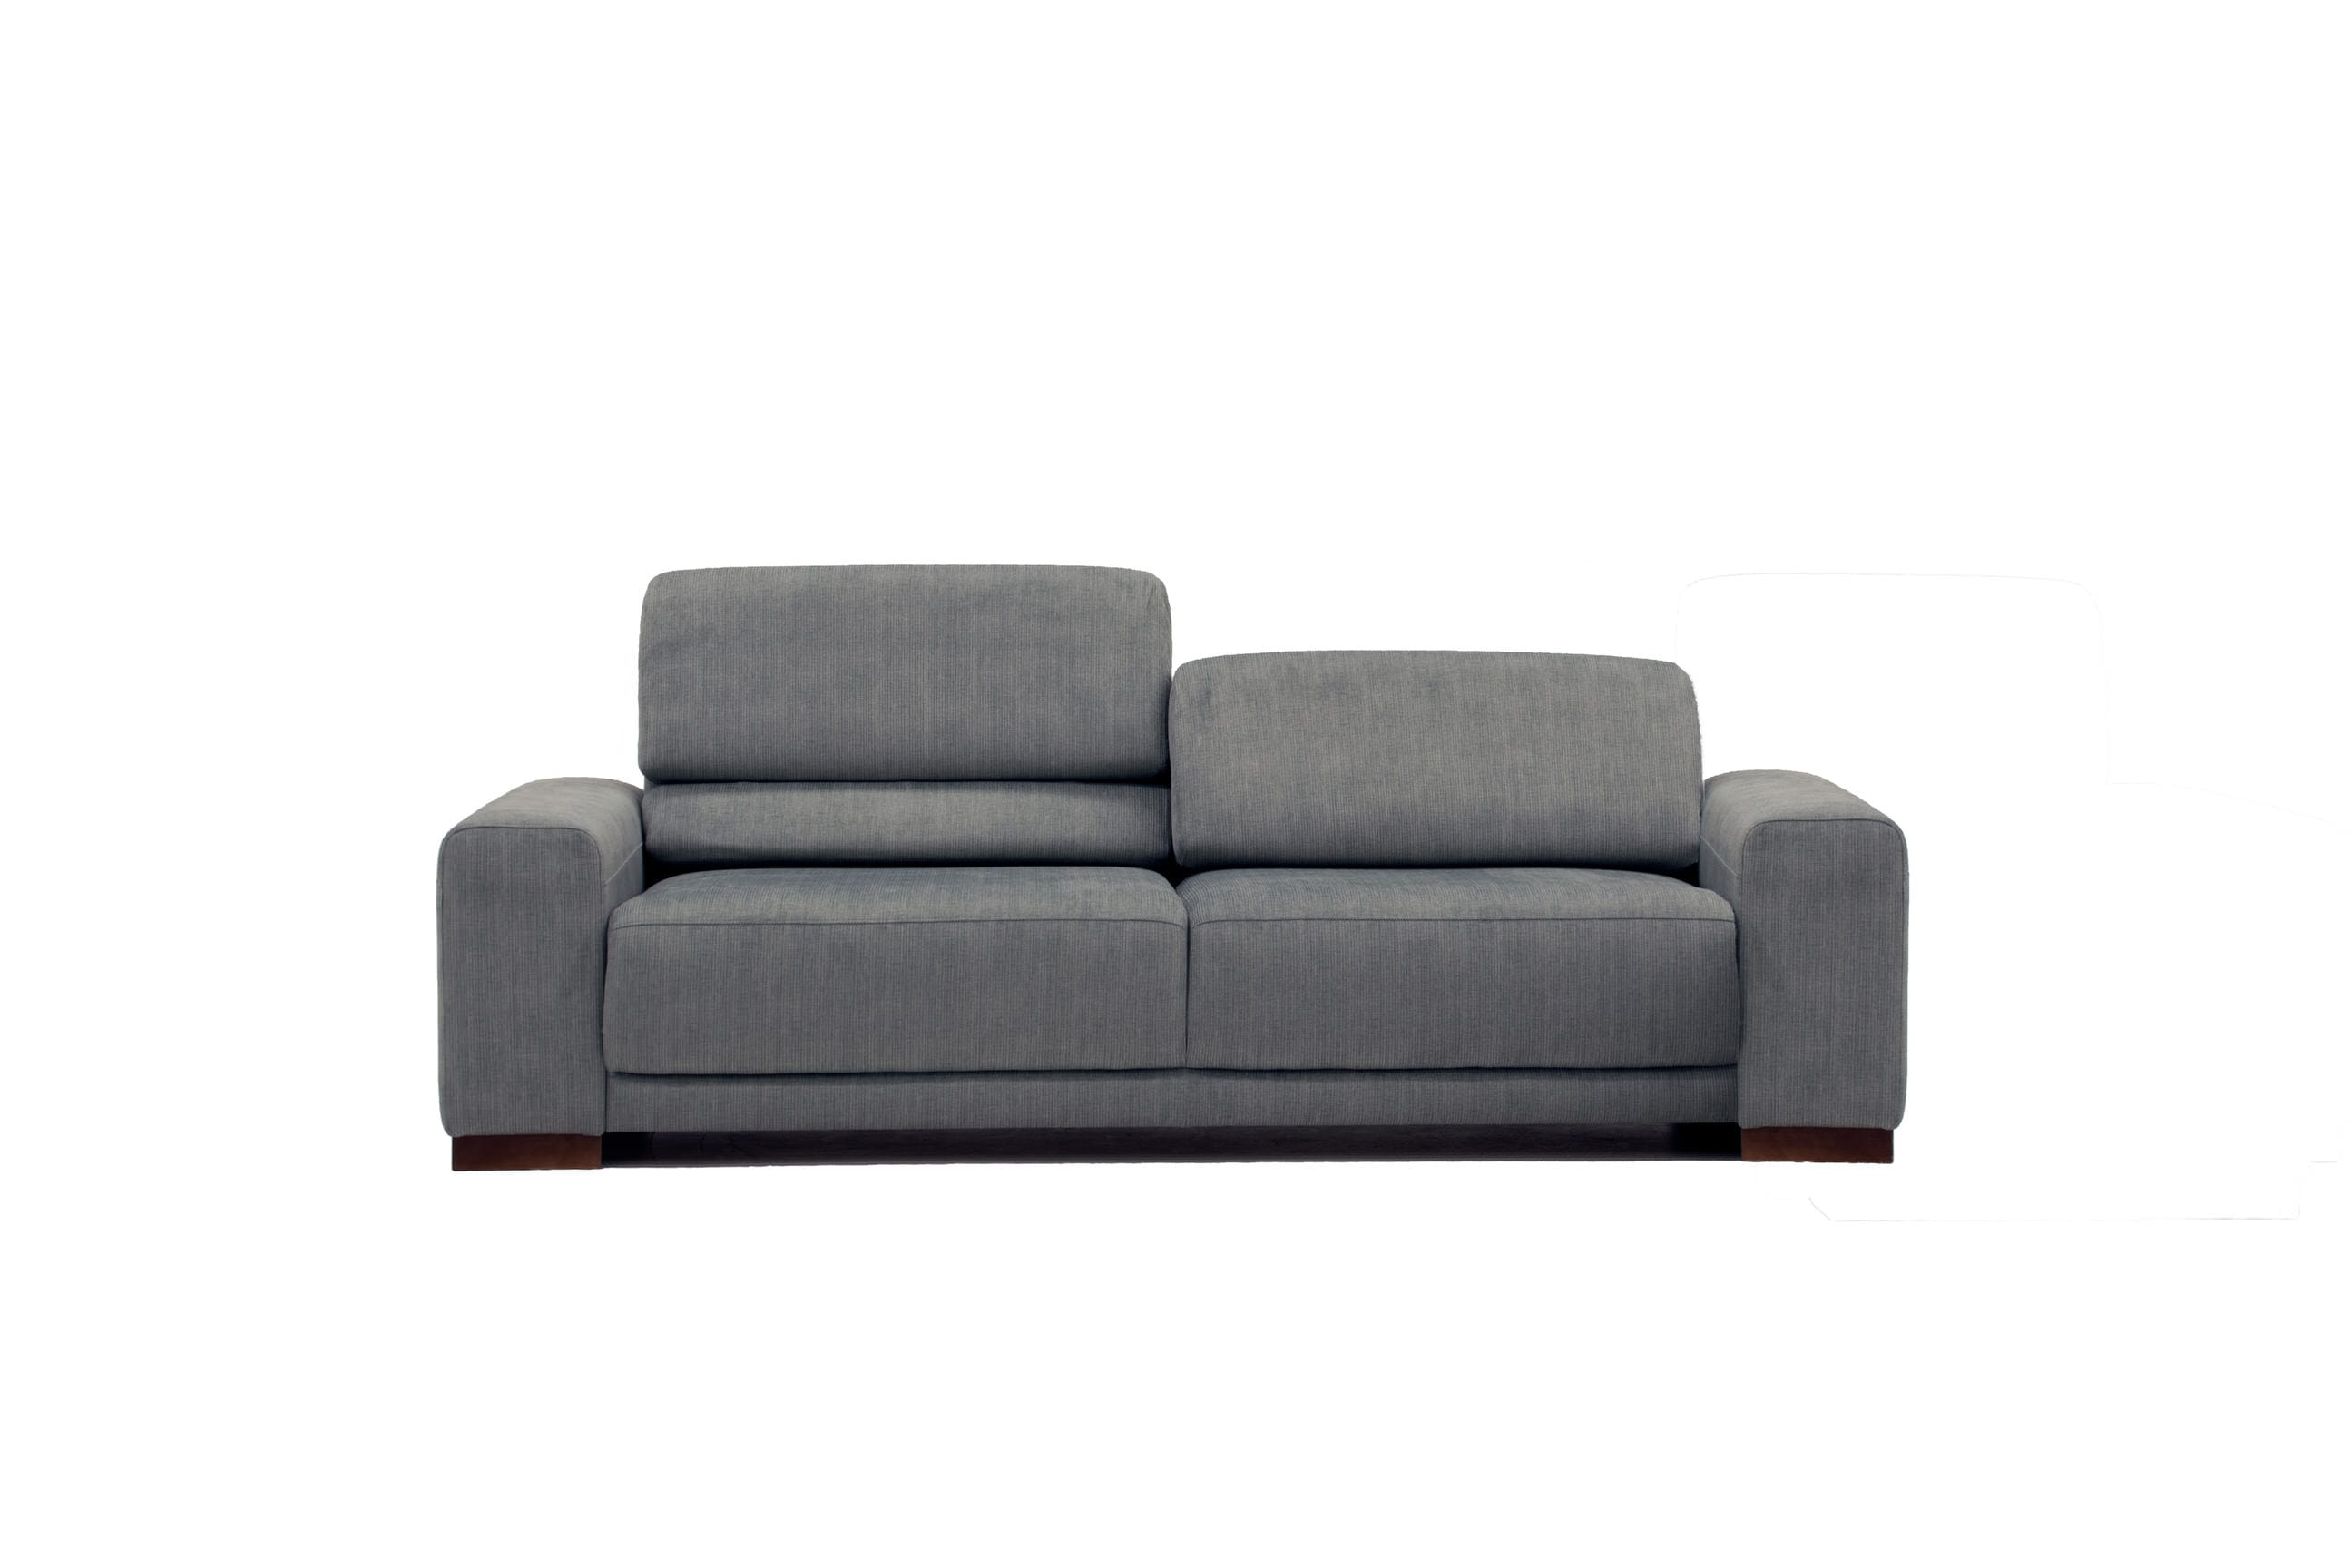 Large Sofa Beds Everyday Use Copenhagen Sofa Sleeper Full Xl Size By Luonto Furniture